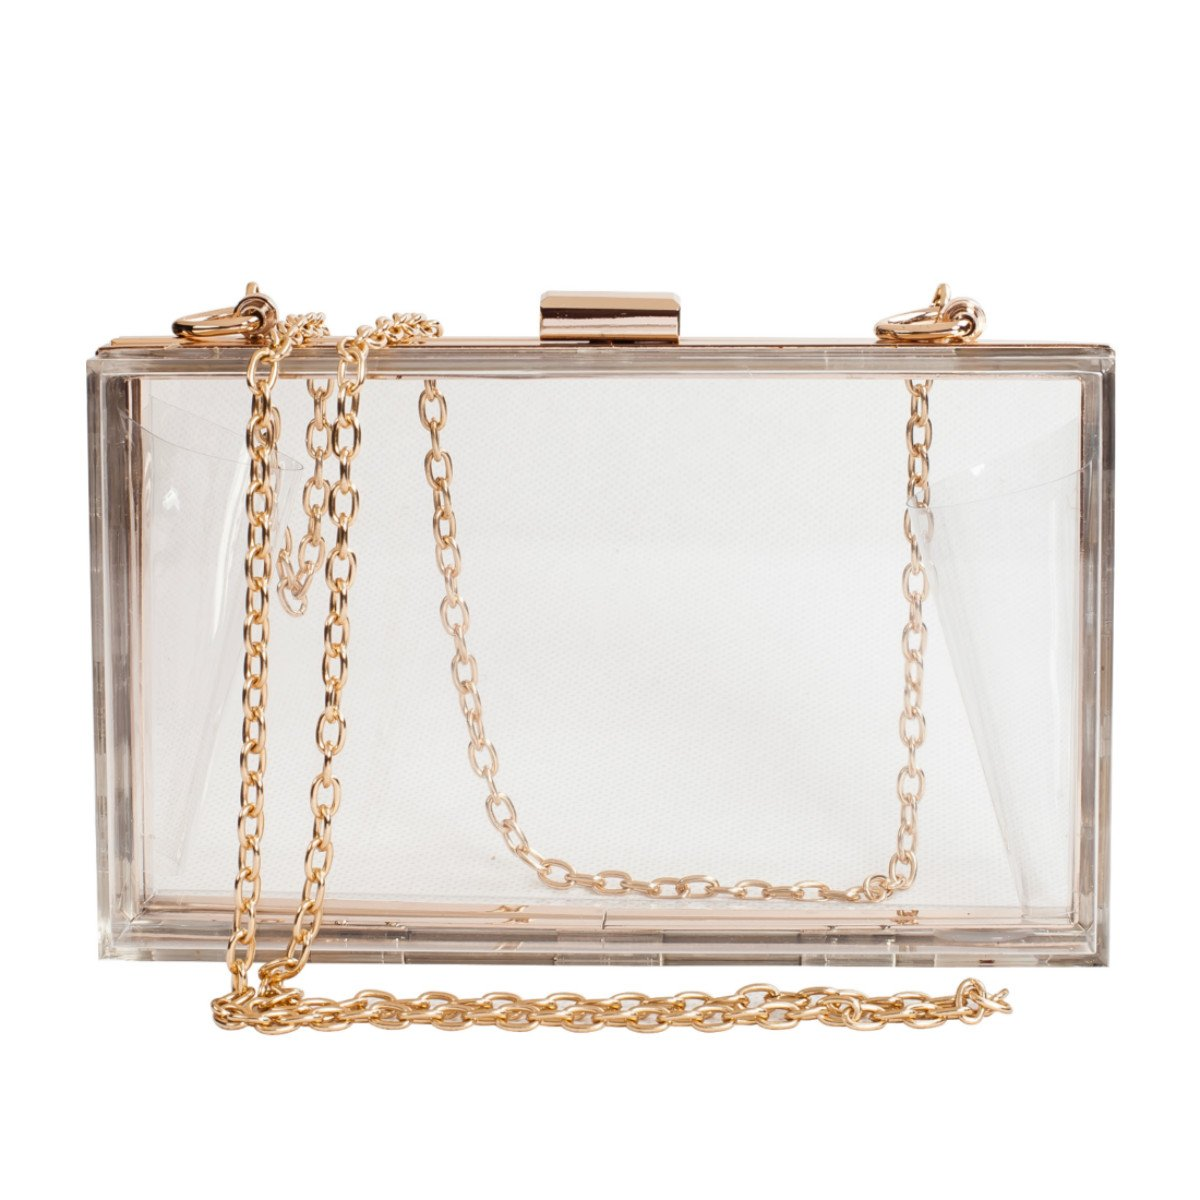 Women Cute Clear Acrylic Box Clutch Stadium Approved Crossbody Purse Evening Bag